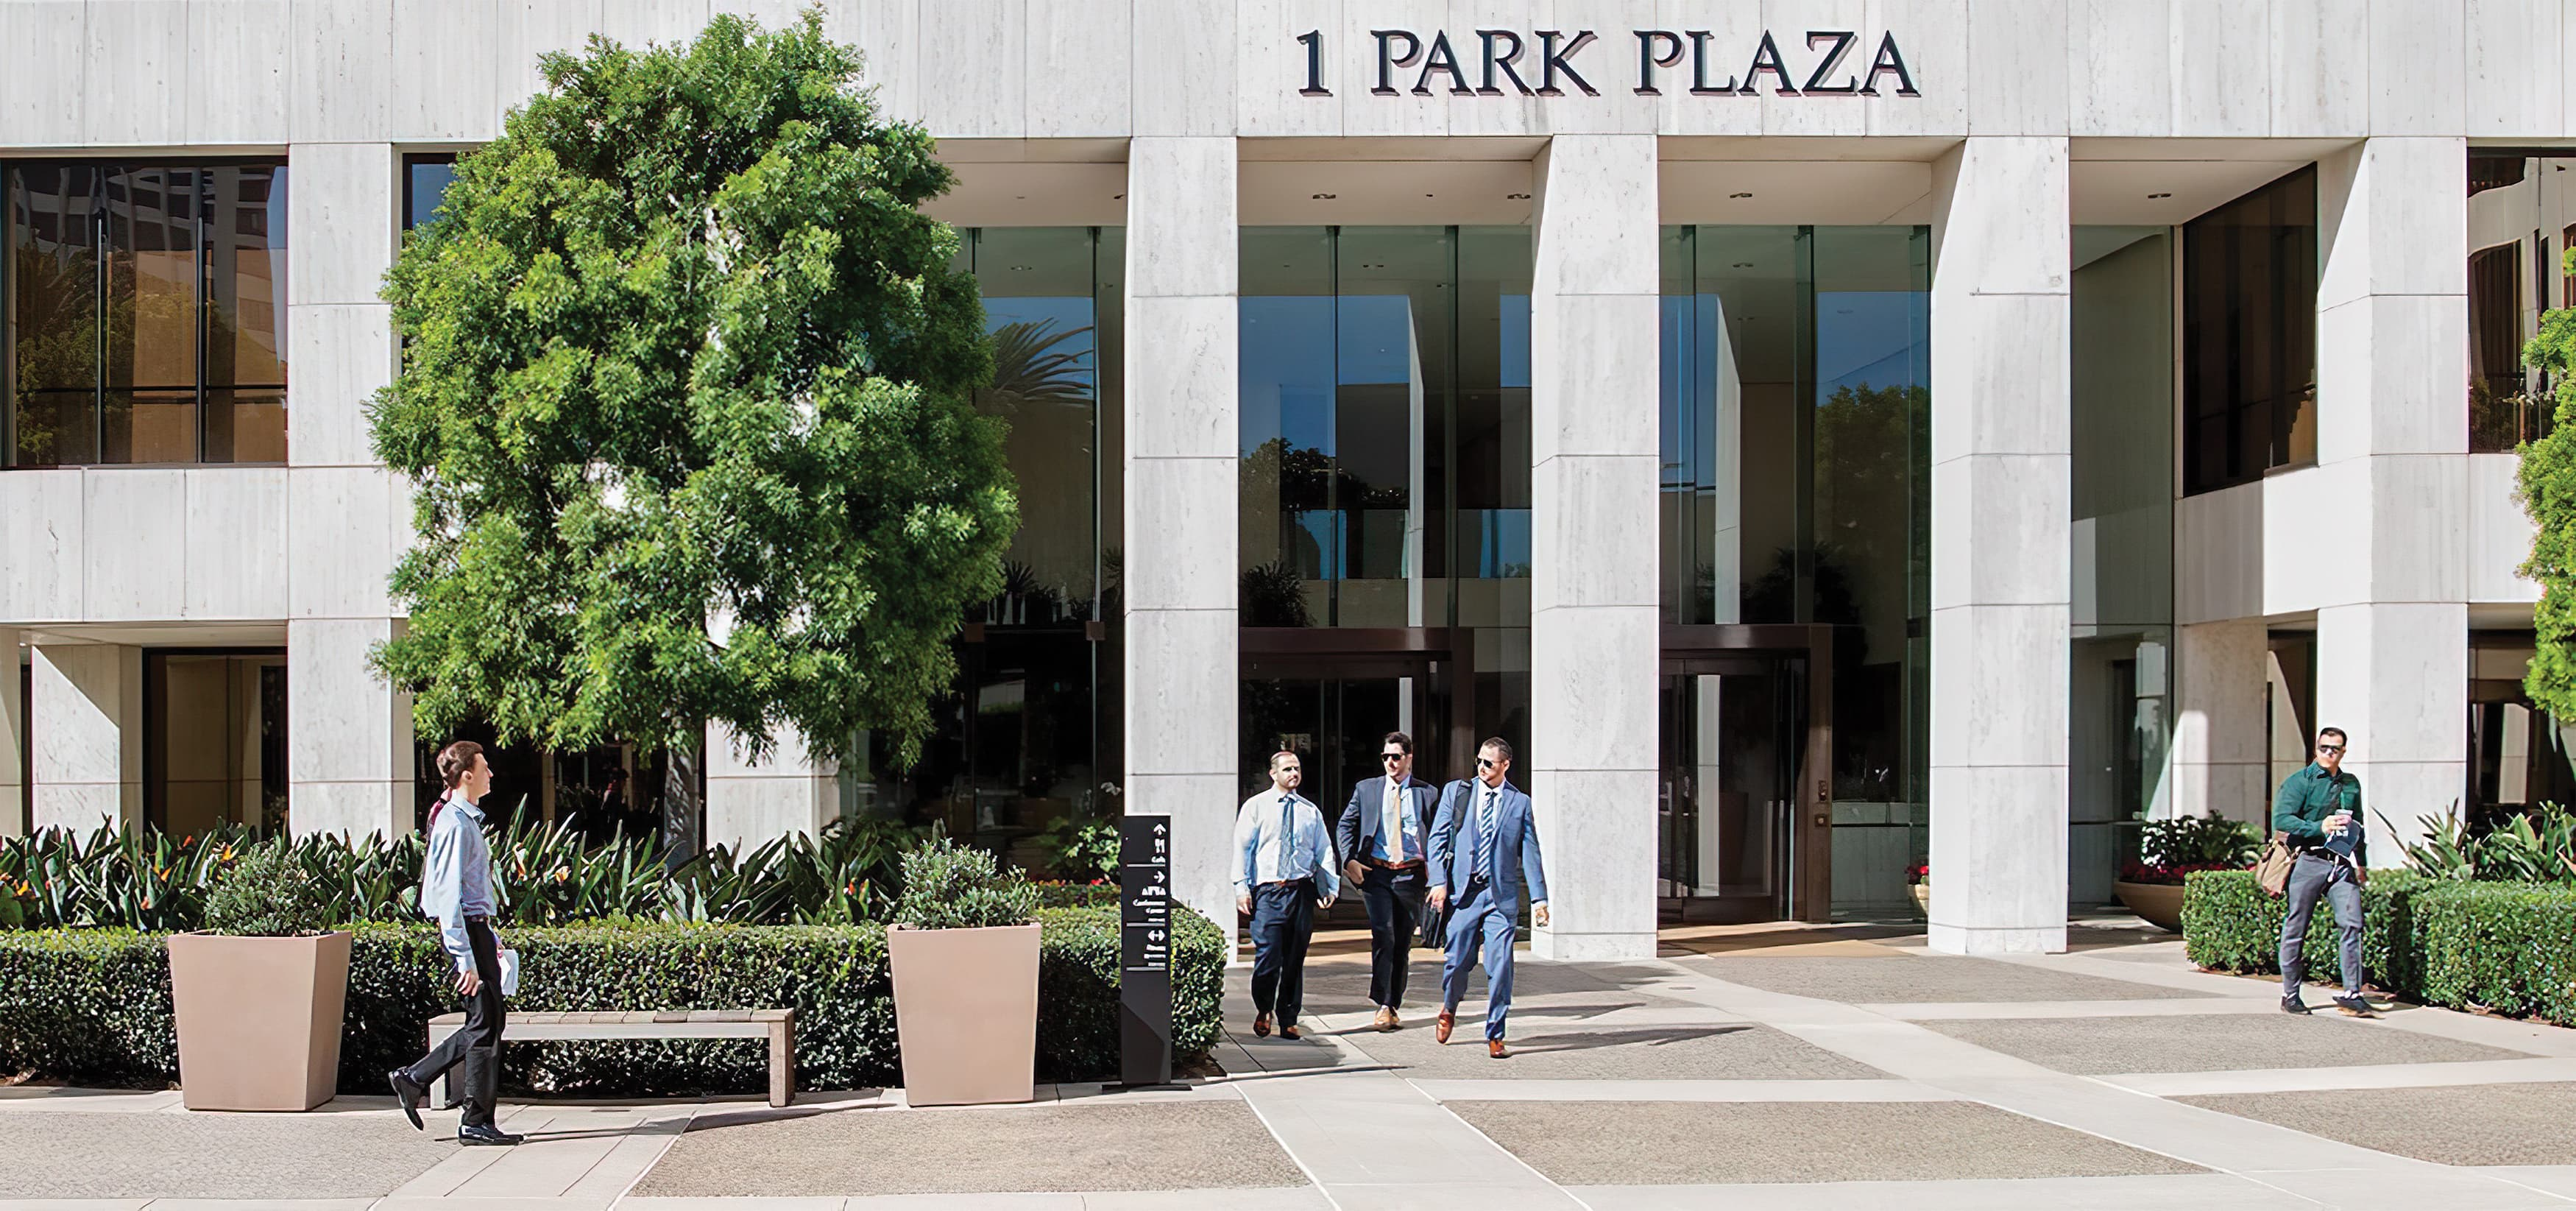 1 Park Plaza, an Irvine Company workplace, with a project identity signage integrated into the architecture.